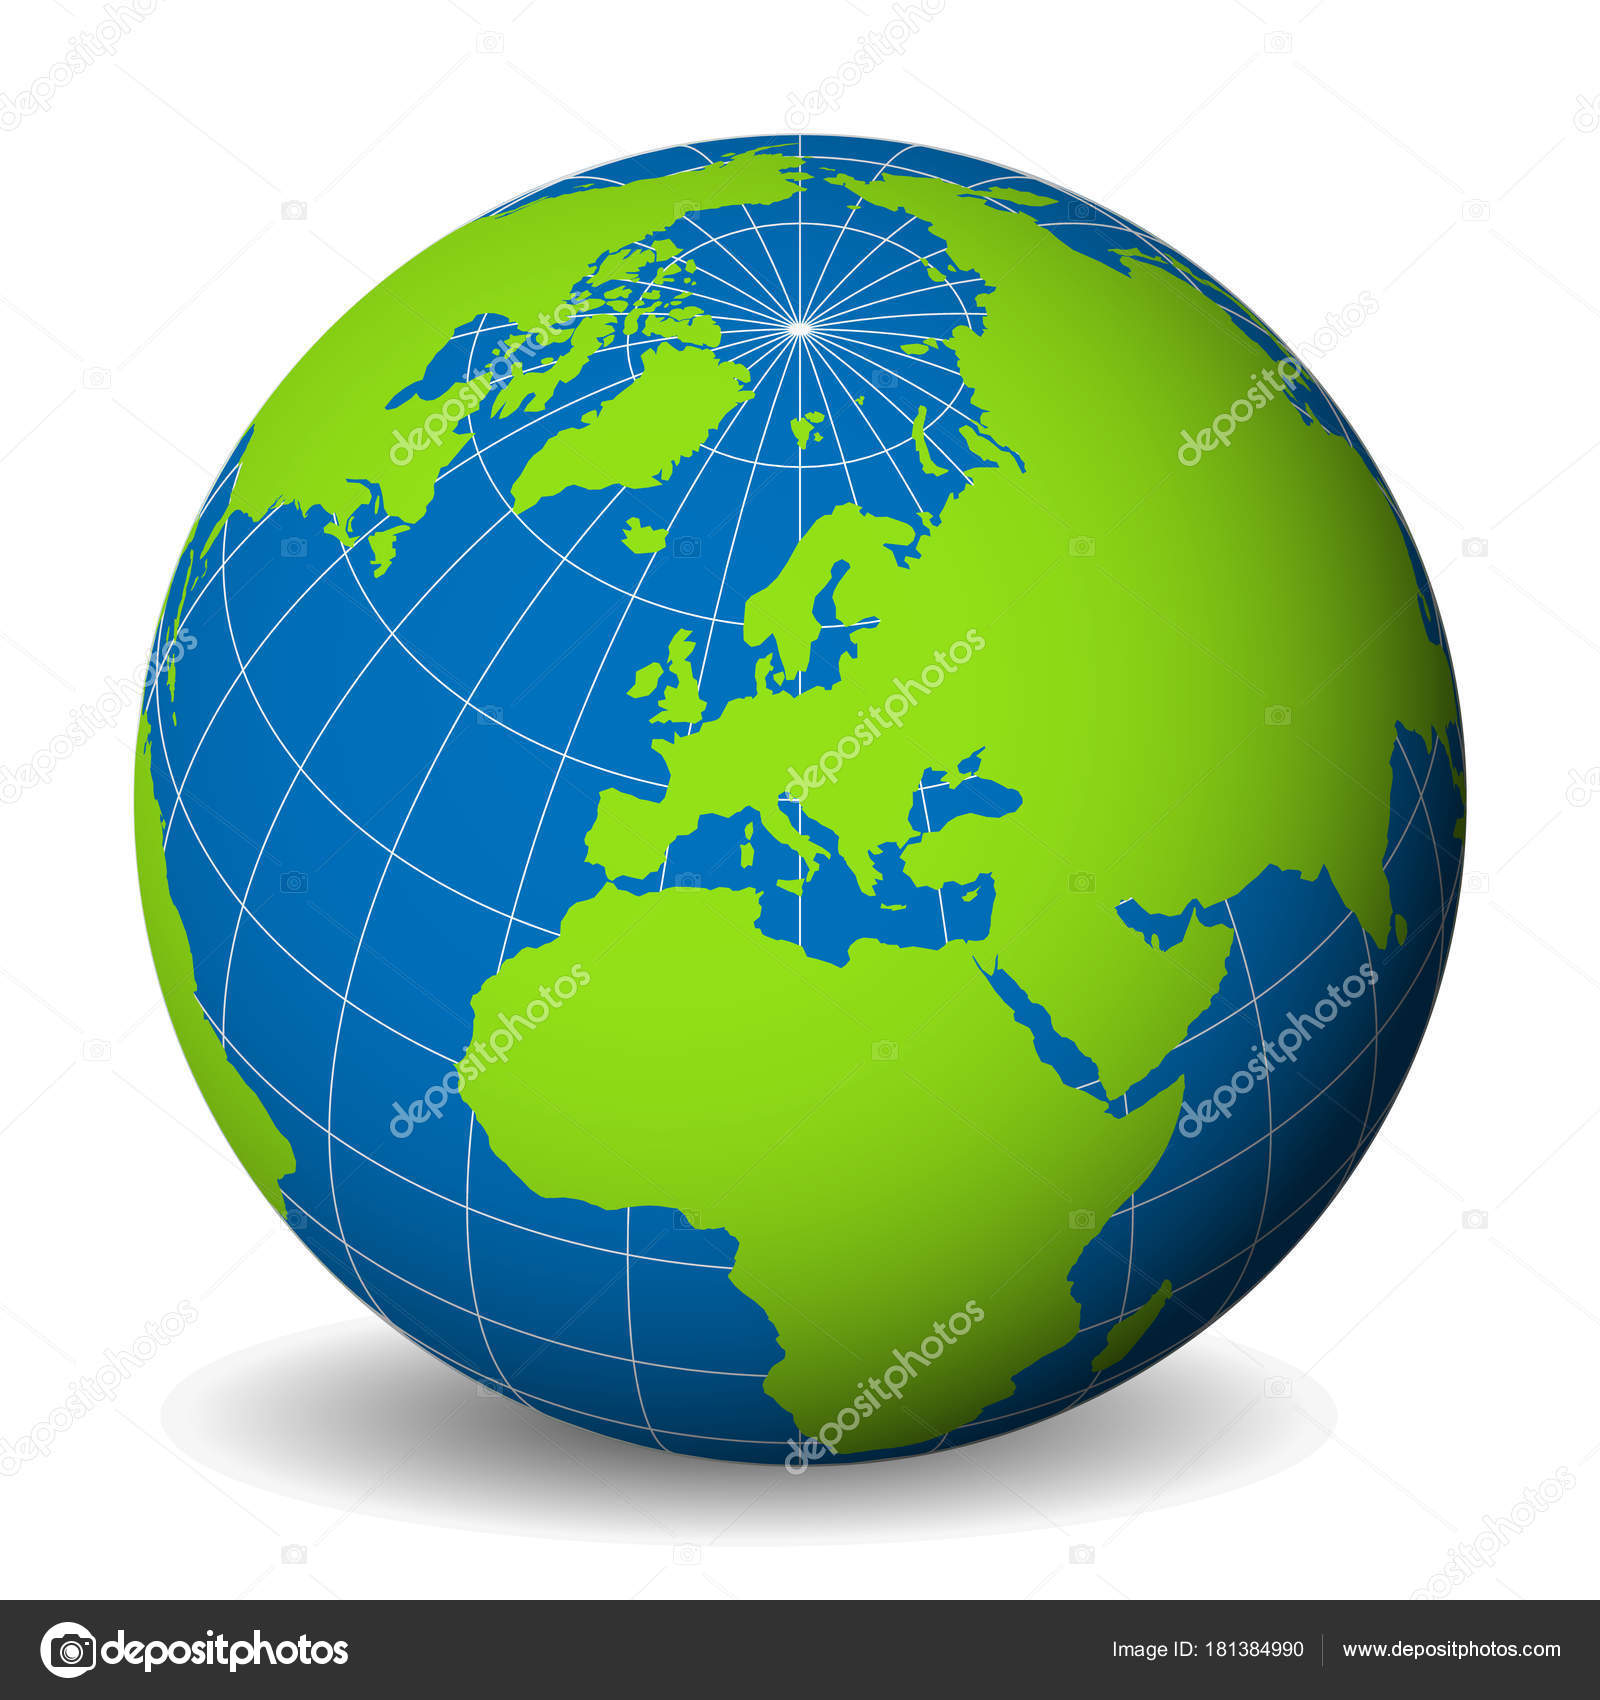 Earth globe with green world map and blue seas and oceans focused od earth globe with green world map and blue seas and oceans focused od europe with thin white meridians and parallels 3d vector illustration gumiabroncs Gallery